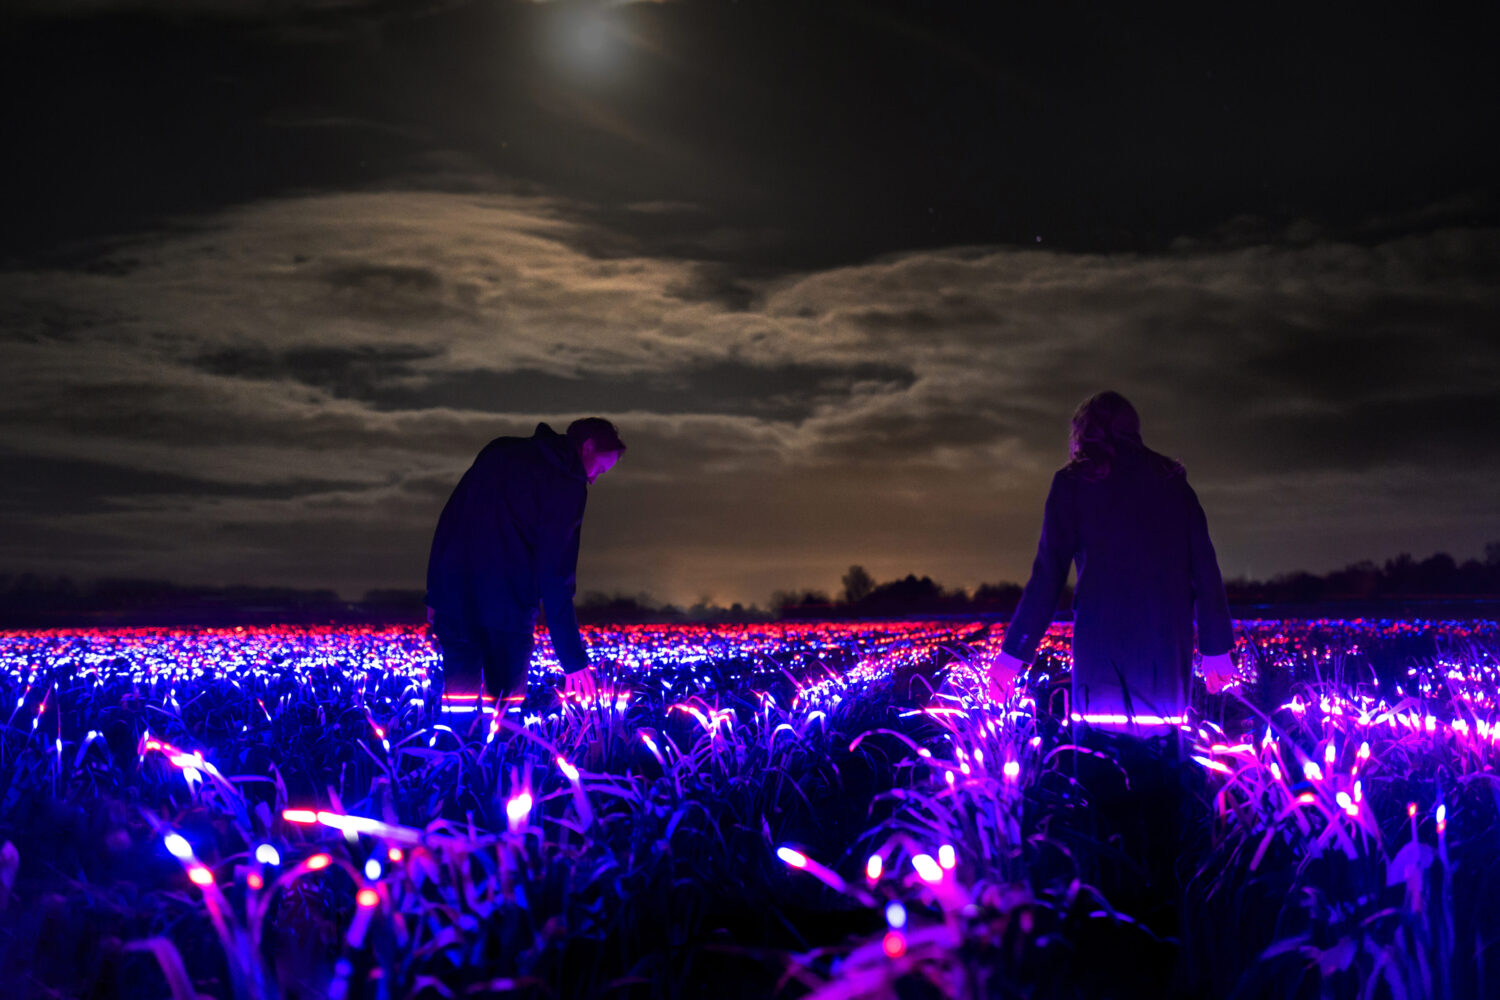 Two people at night standing amongst fields of plants illuminated in red and purple light